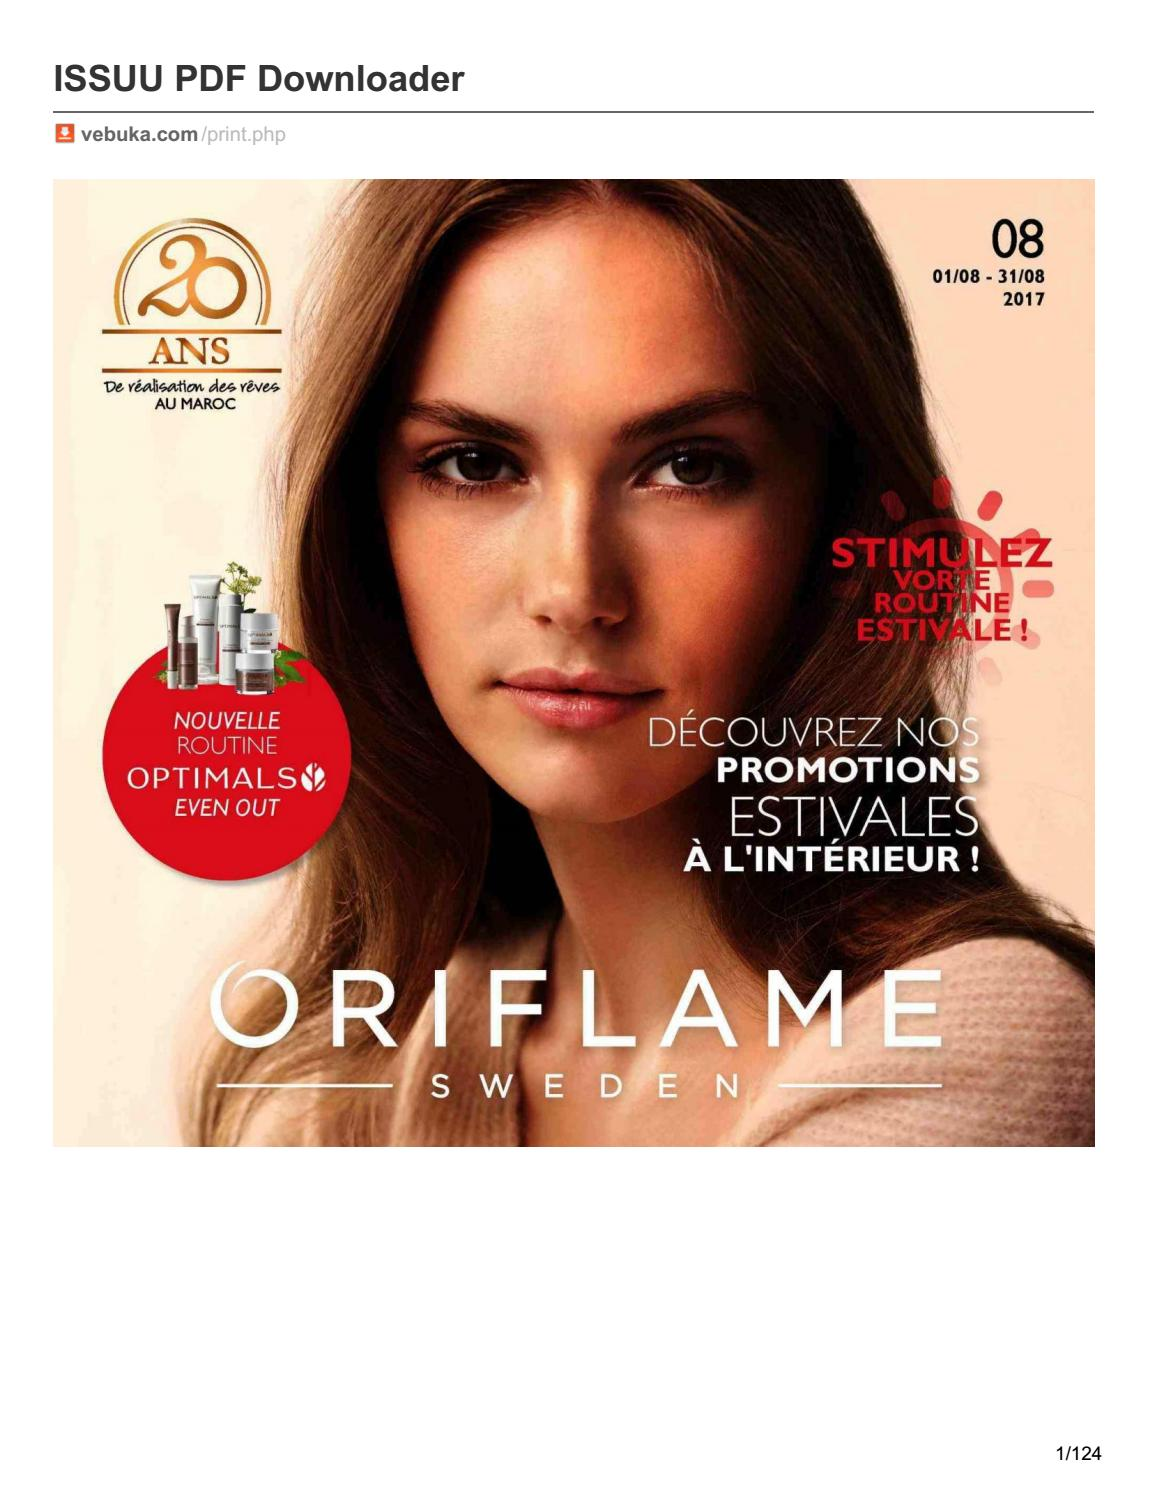 Oriflame Maroc Catalogue Aout 2017 by promodumaroc - issuu